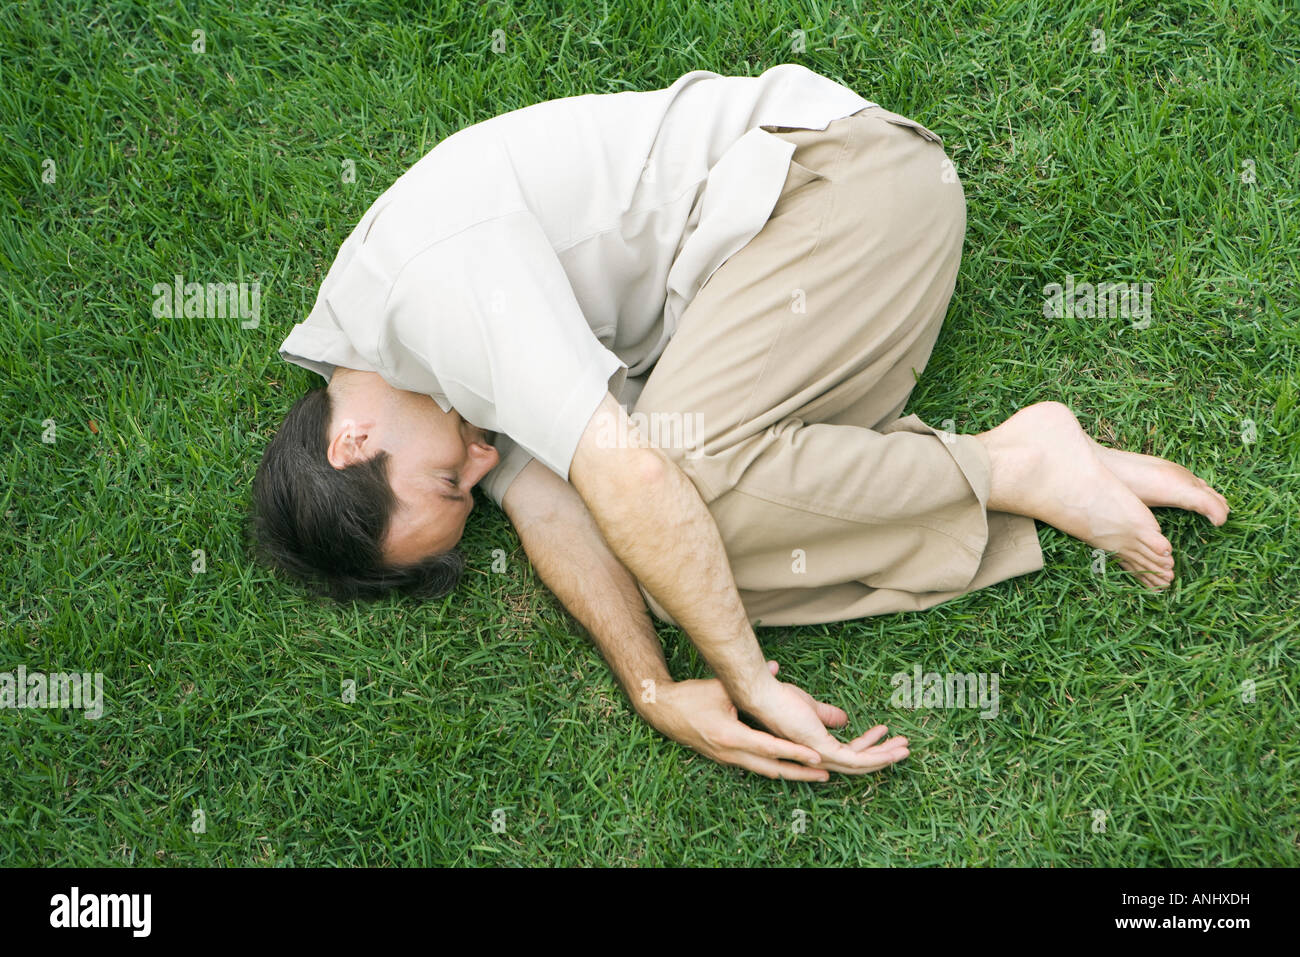 Man lying in fetal position on grass, eyes closed, high angle view - Stock Image